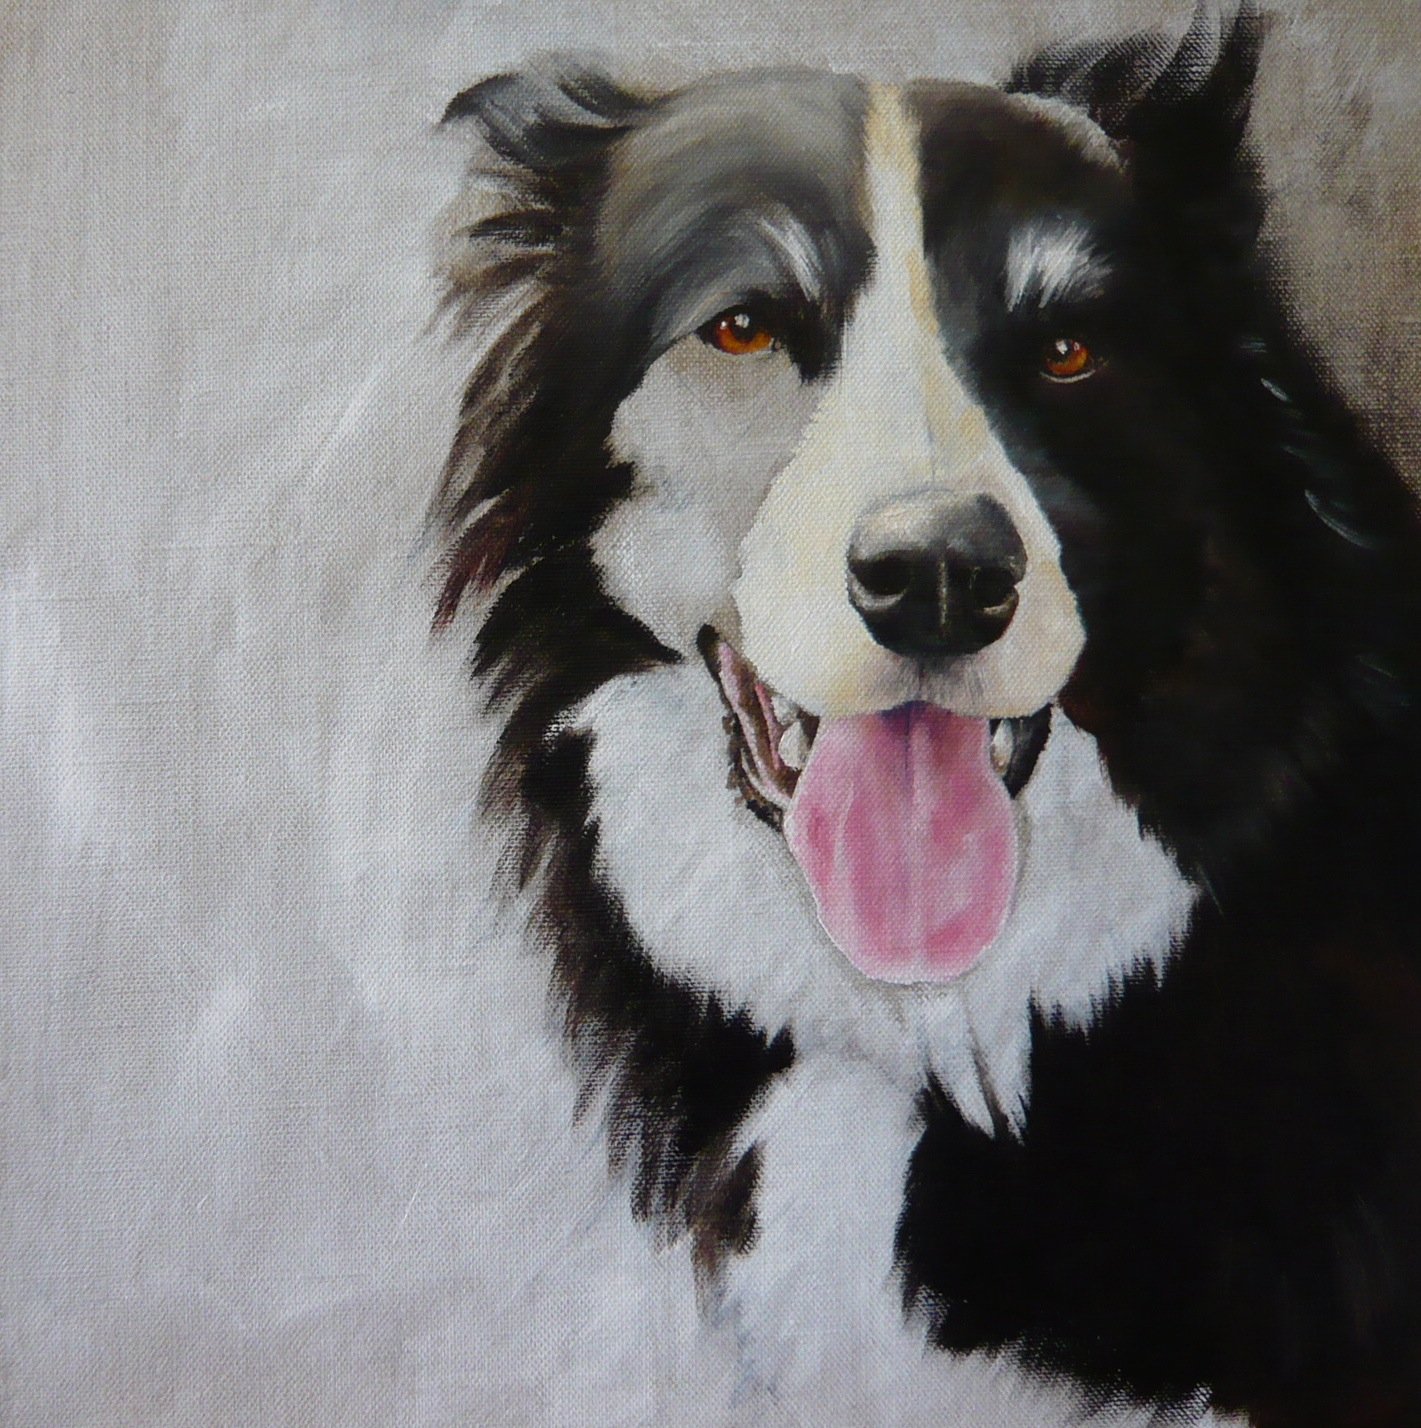 stage of a border collie oil painting, face and fur